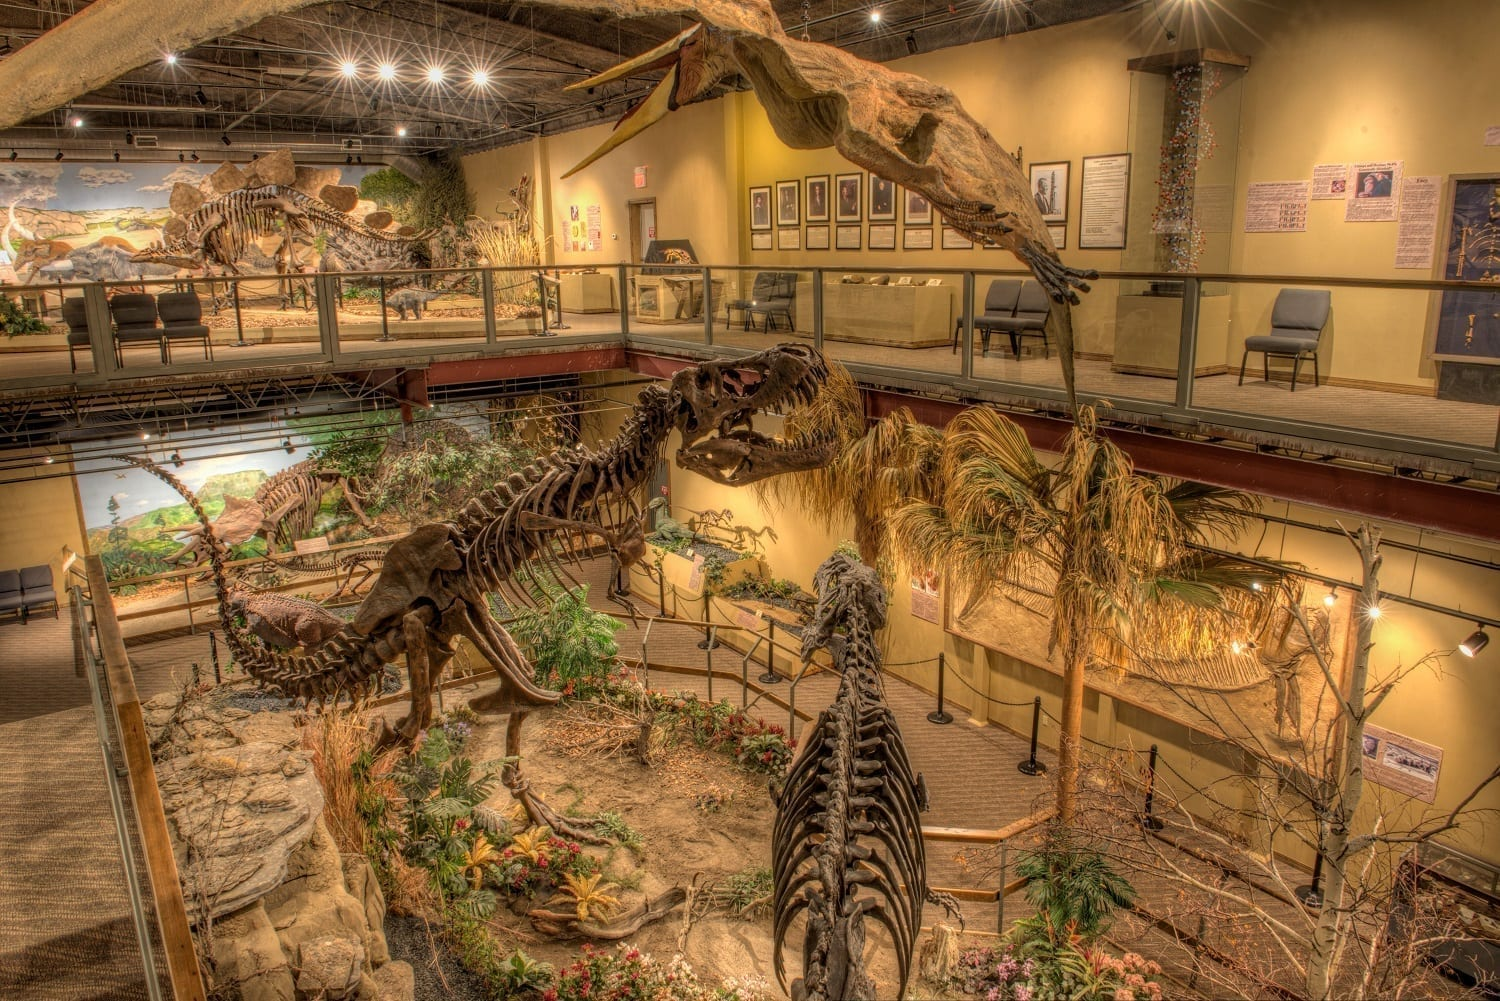 Glendive Dinosaur Museum main hall, photo credit: Tommy Lohman